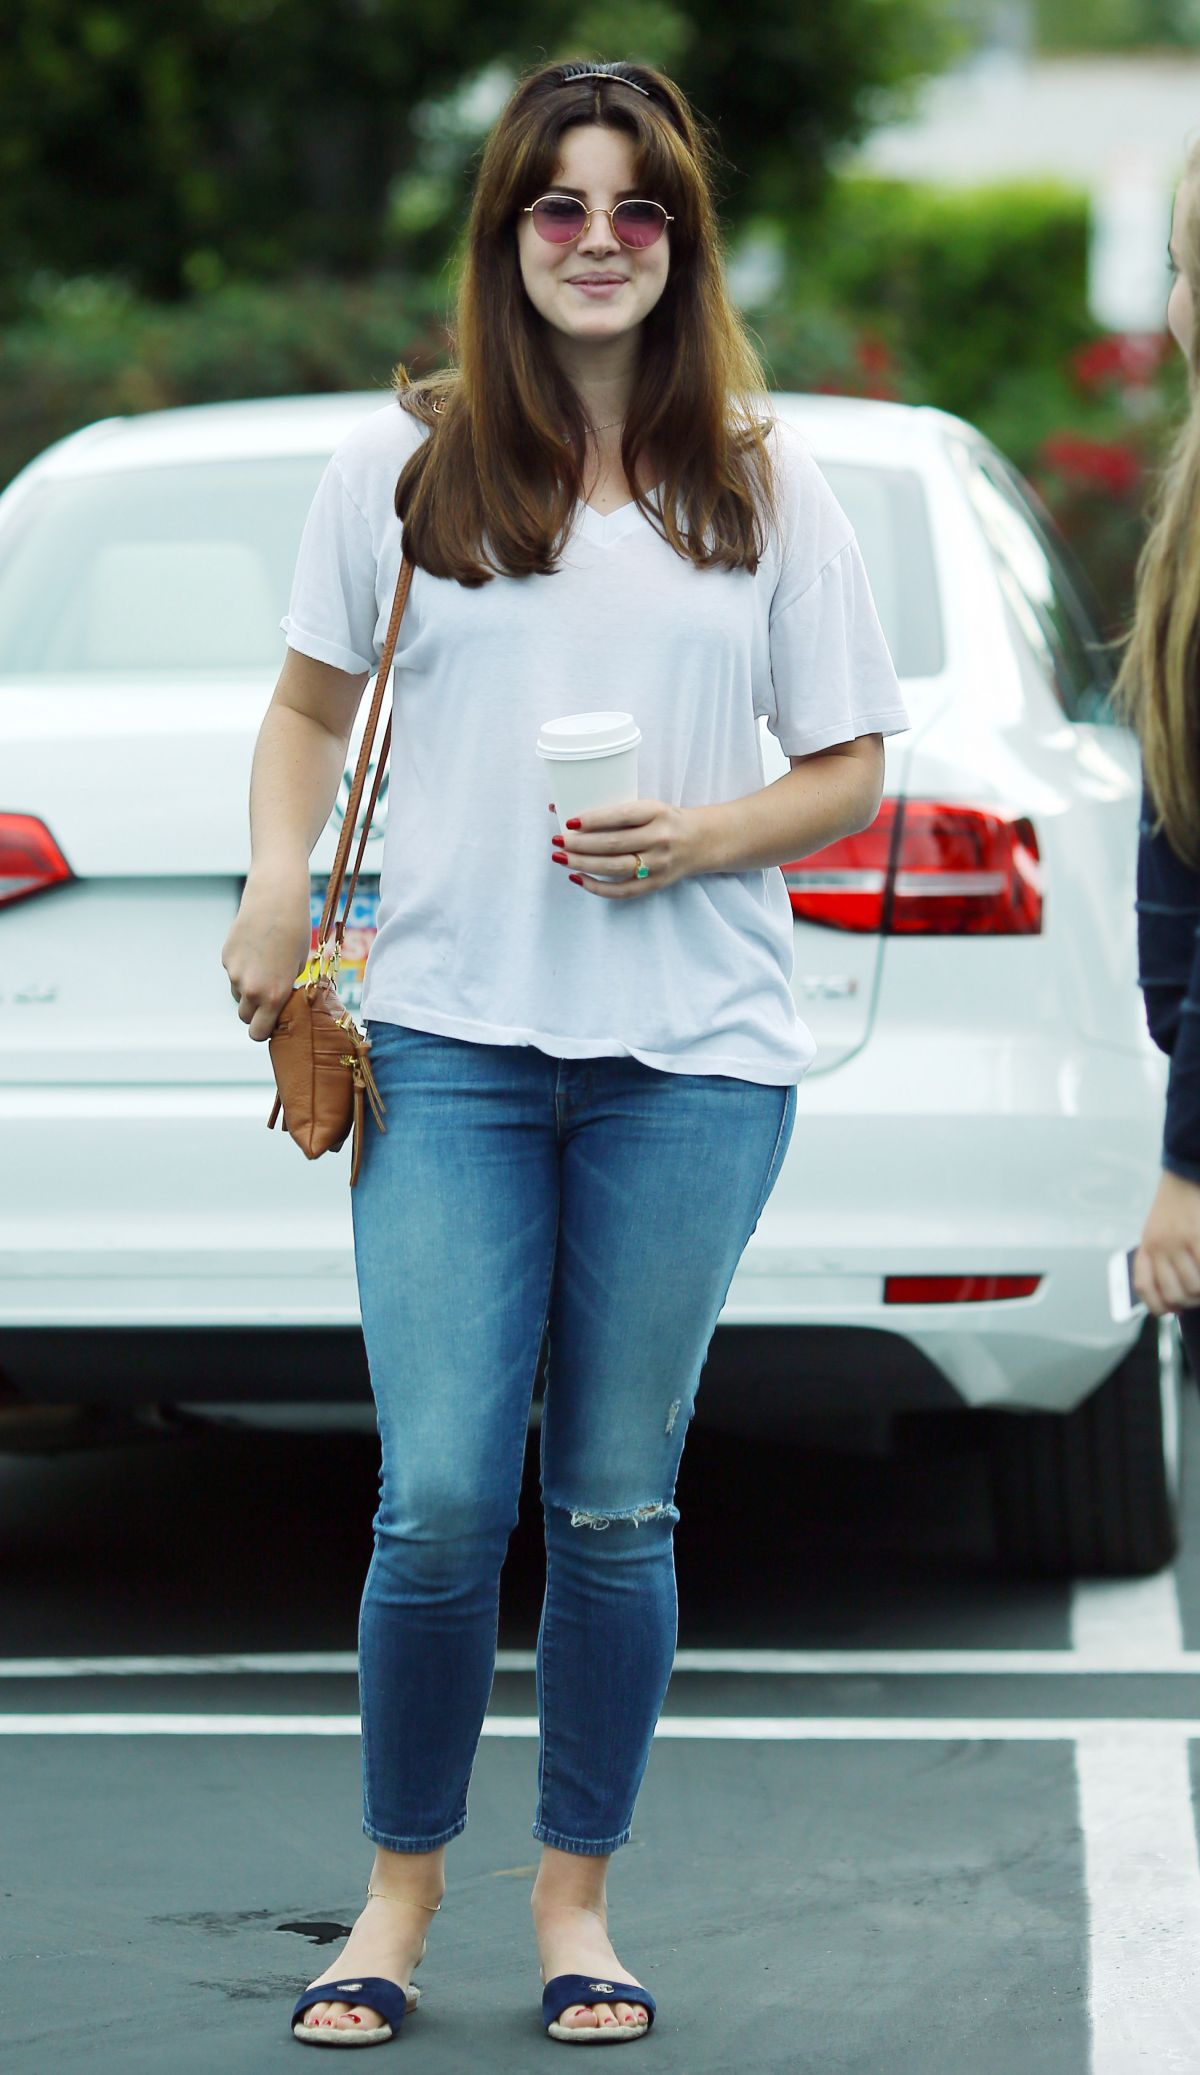 LANA DEL REY Out and About in Los Angeles 07/19/2015